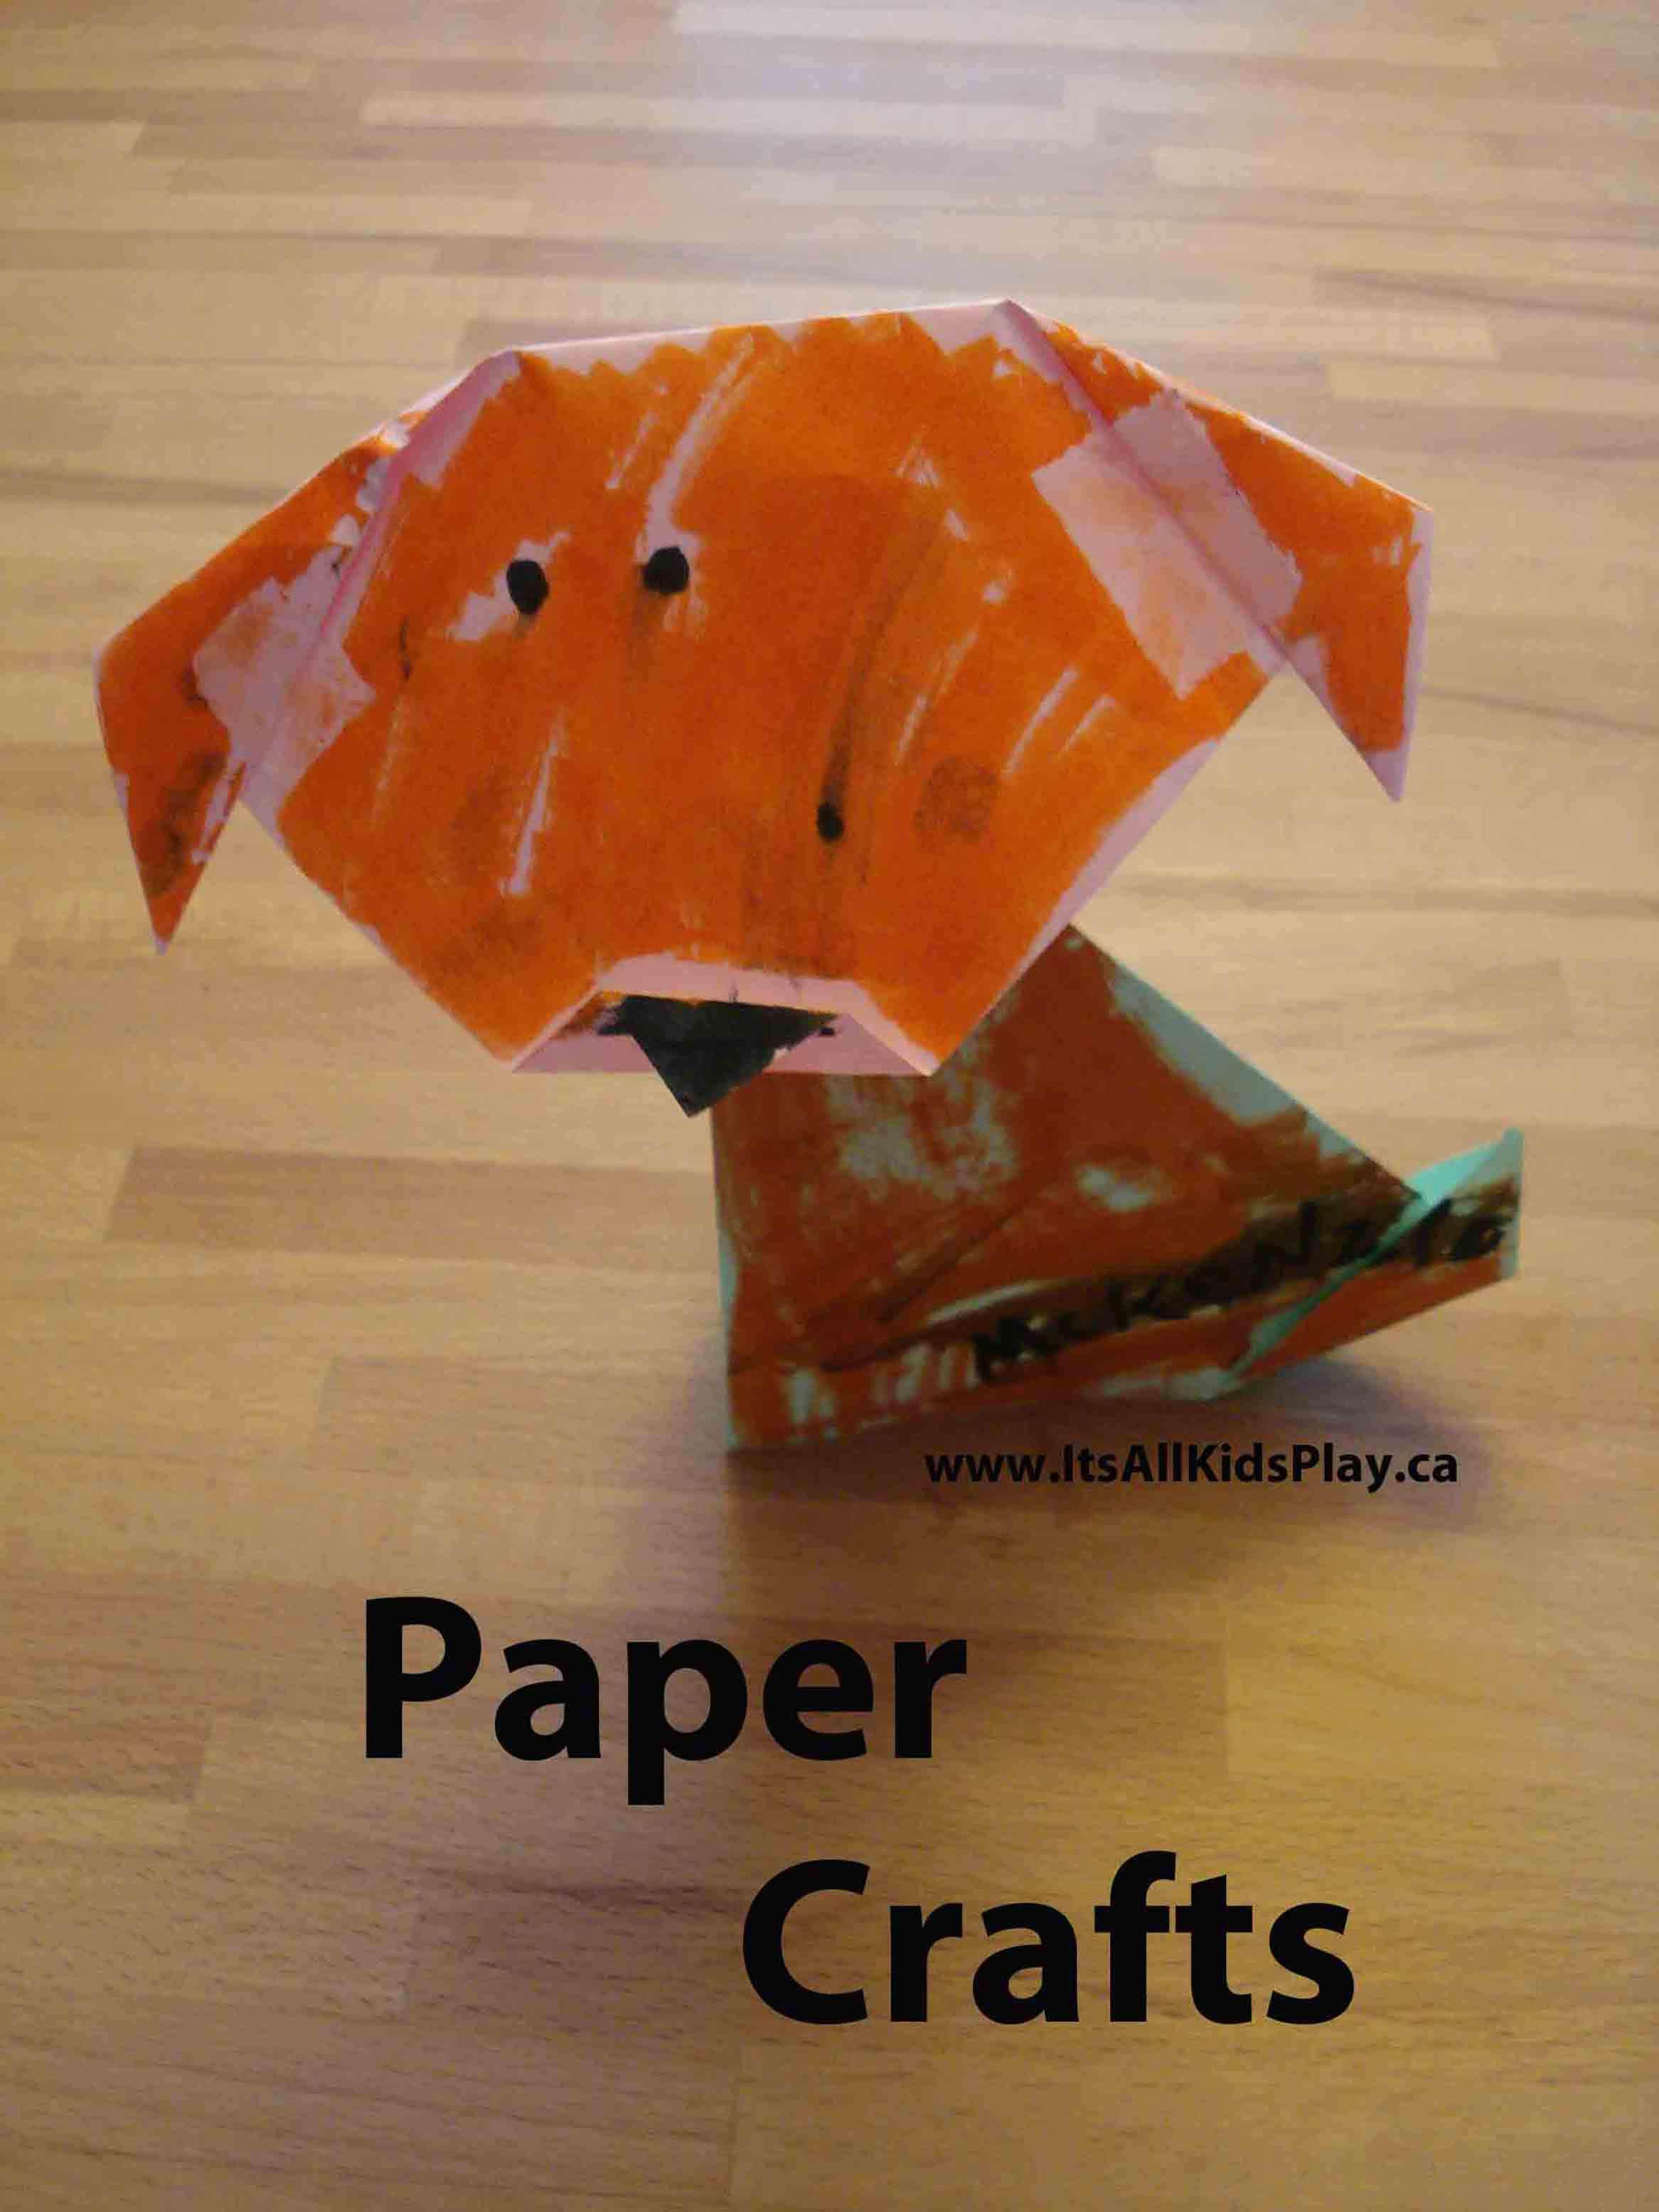 arts and crafts essays Art and craft shop buy cheap art and crafts supplies from the works in our online craft shop we offer fantastic discounts on cheap craft supplies, including art canvases , paints , sketch books and more.